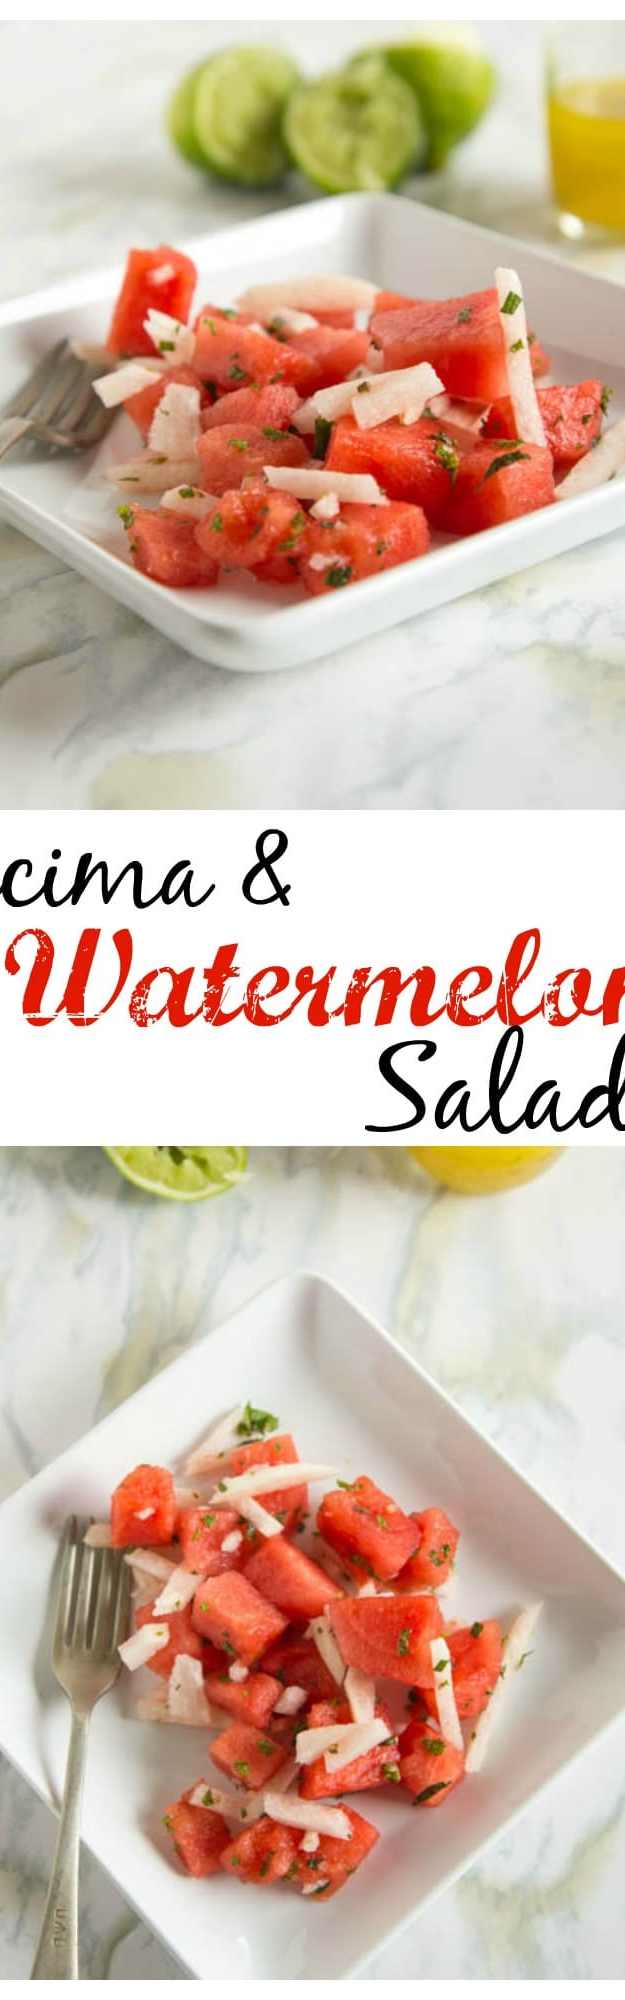 Jicima and Watermelon Salad - use juicy watermelon and slightly sweet jicima to make a great summer side dish.  Toss with a honey-lime vinaigrette.